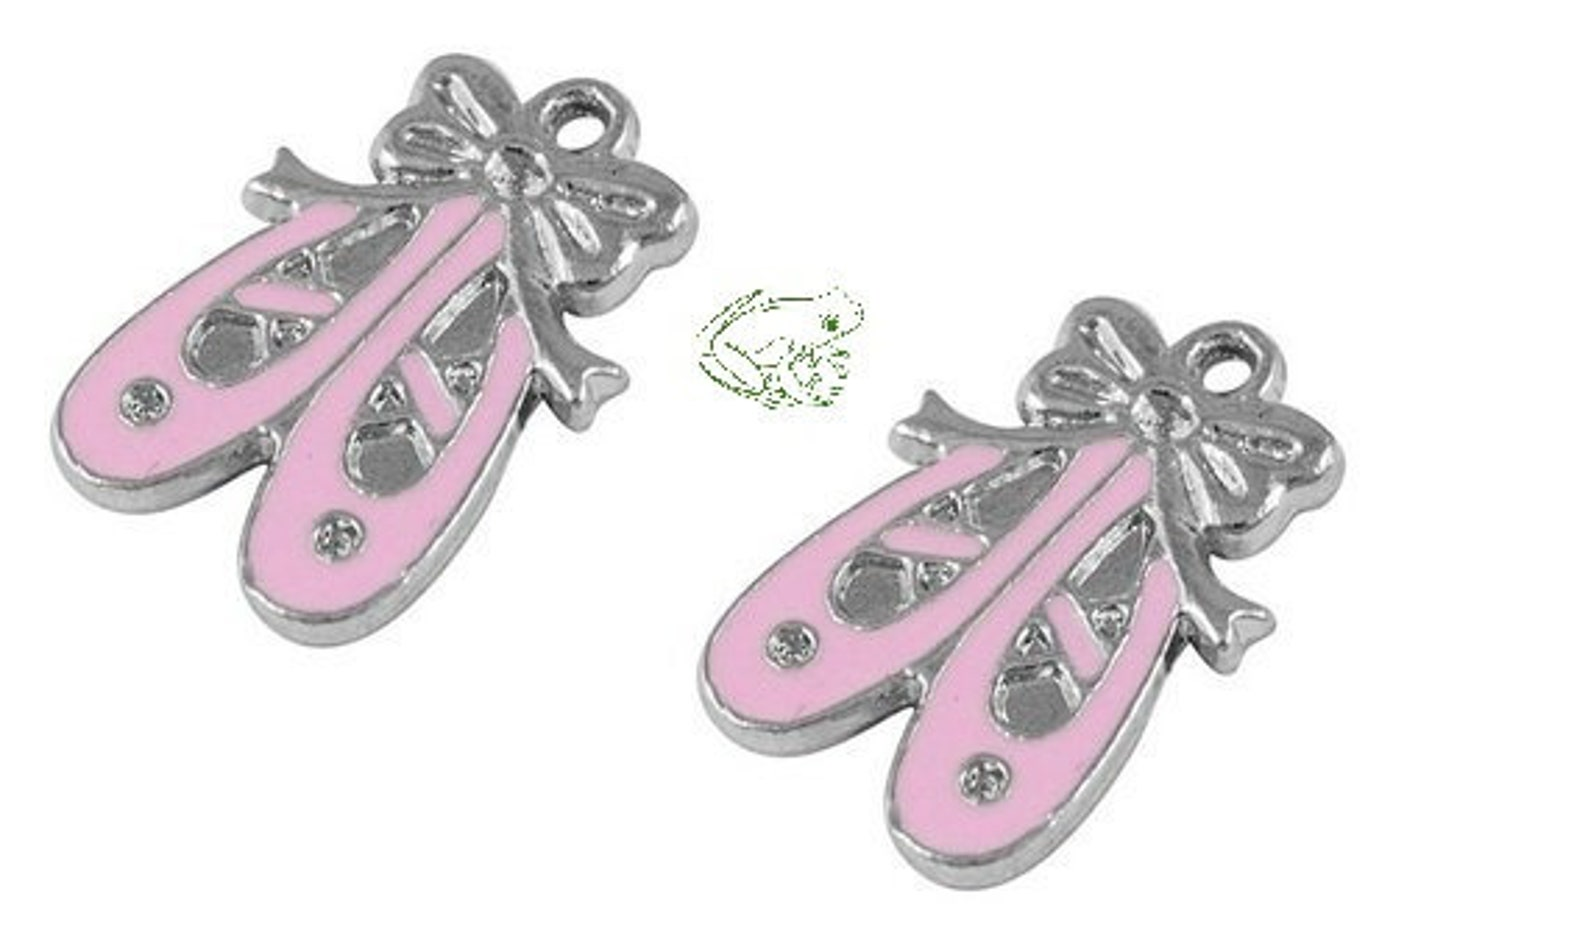 charm, enamel ballet slippers, 21x14 mm double-sided, set of 2, ballet charm, ballet slipper charm, pink ballet slipper, toe sho